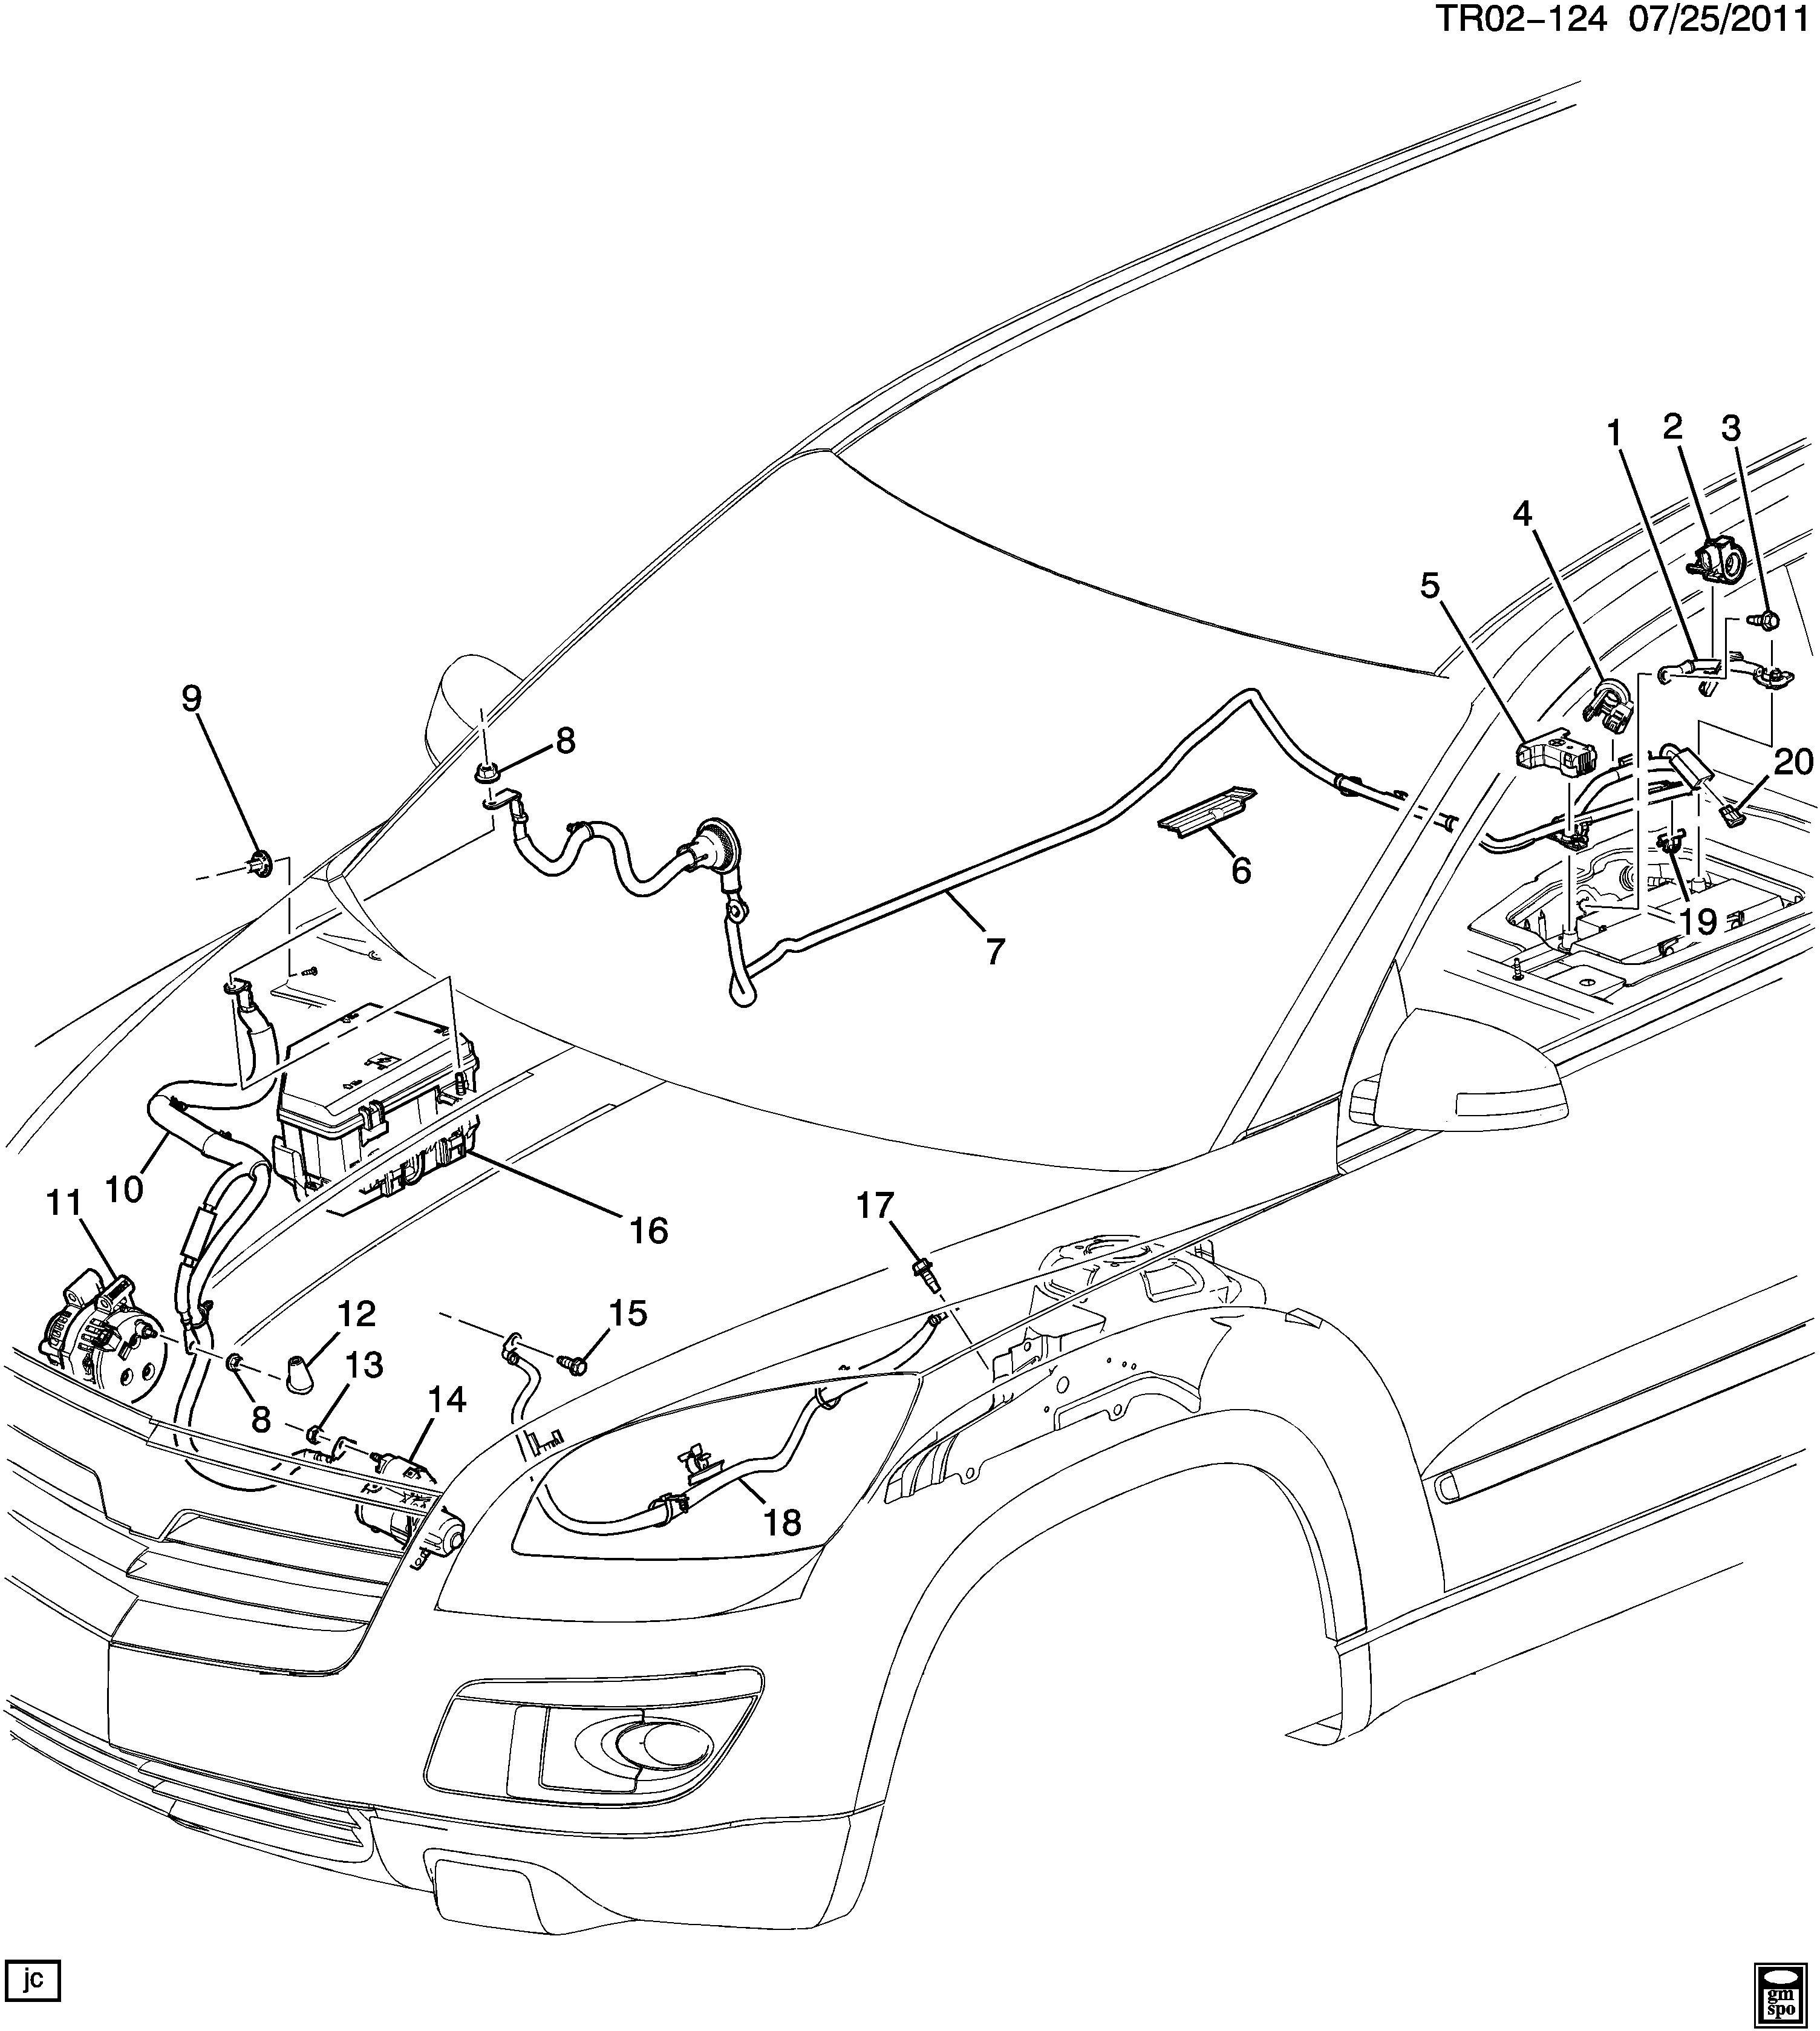 2009 Gmc Acadia Engine Diagram Chevrolet Traverse Buick Enclave Dead Battery Posts In Partment Forum Of